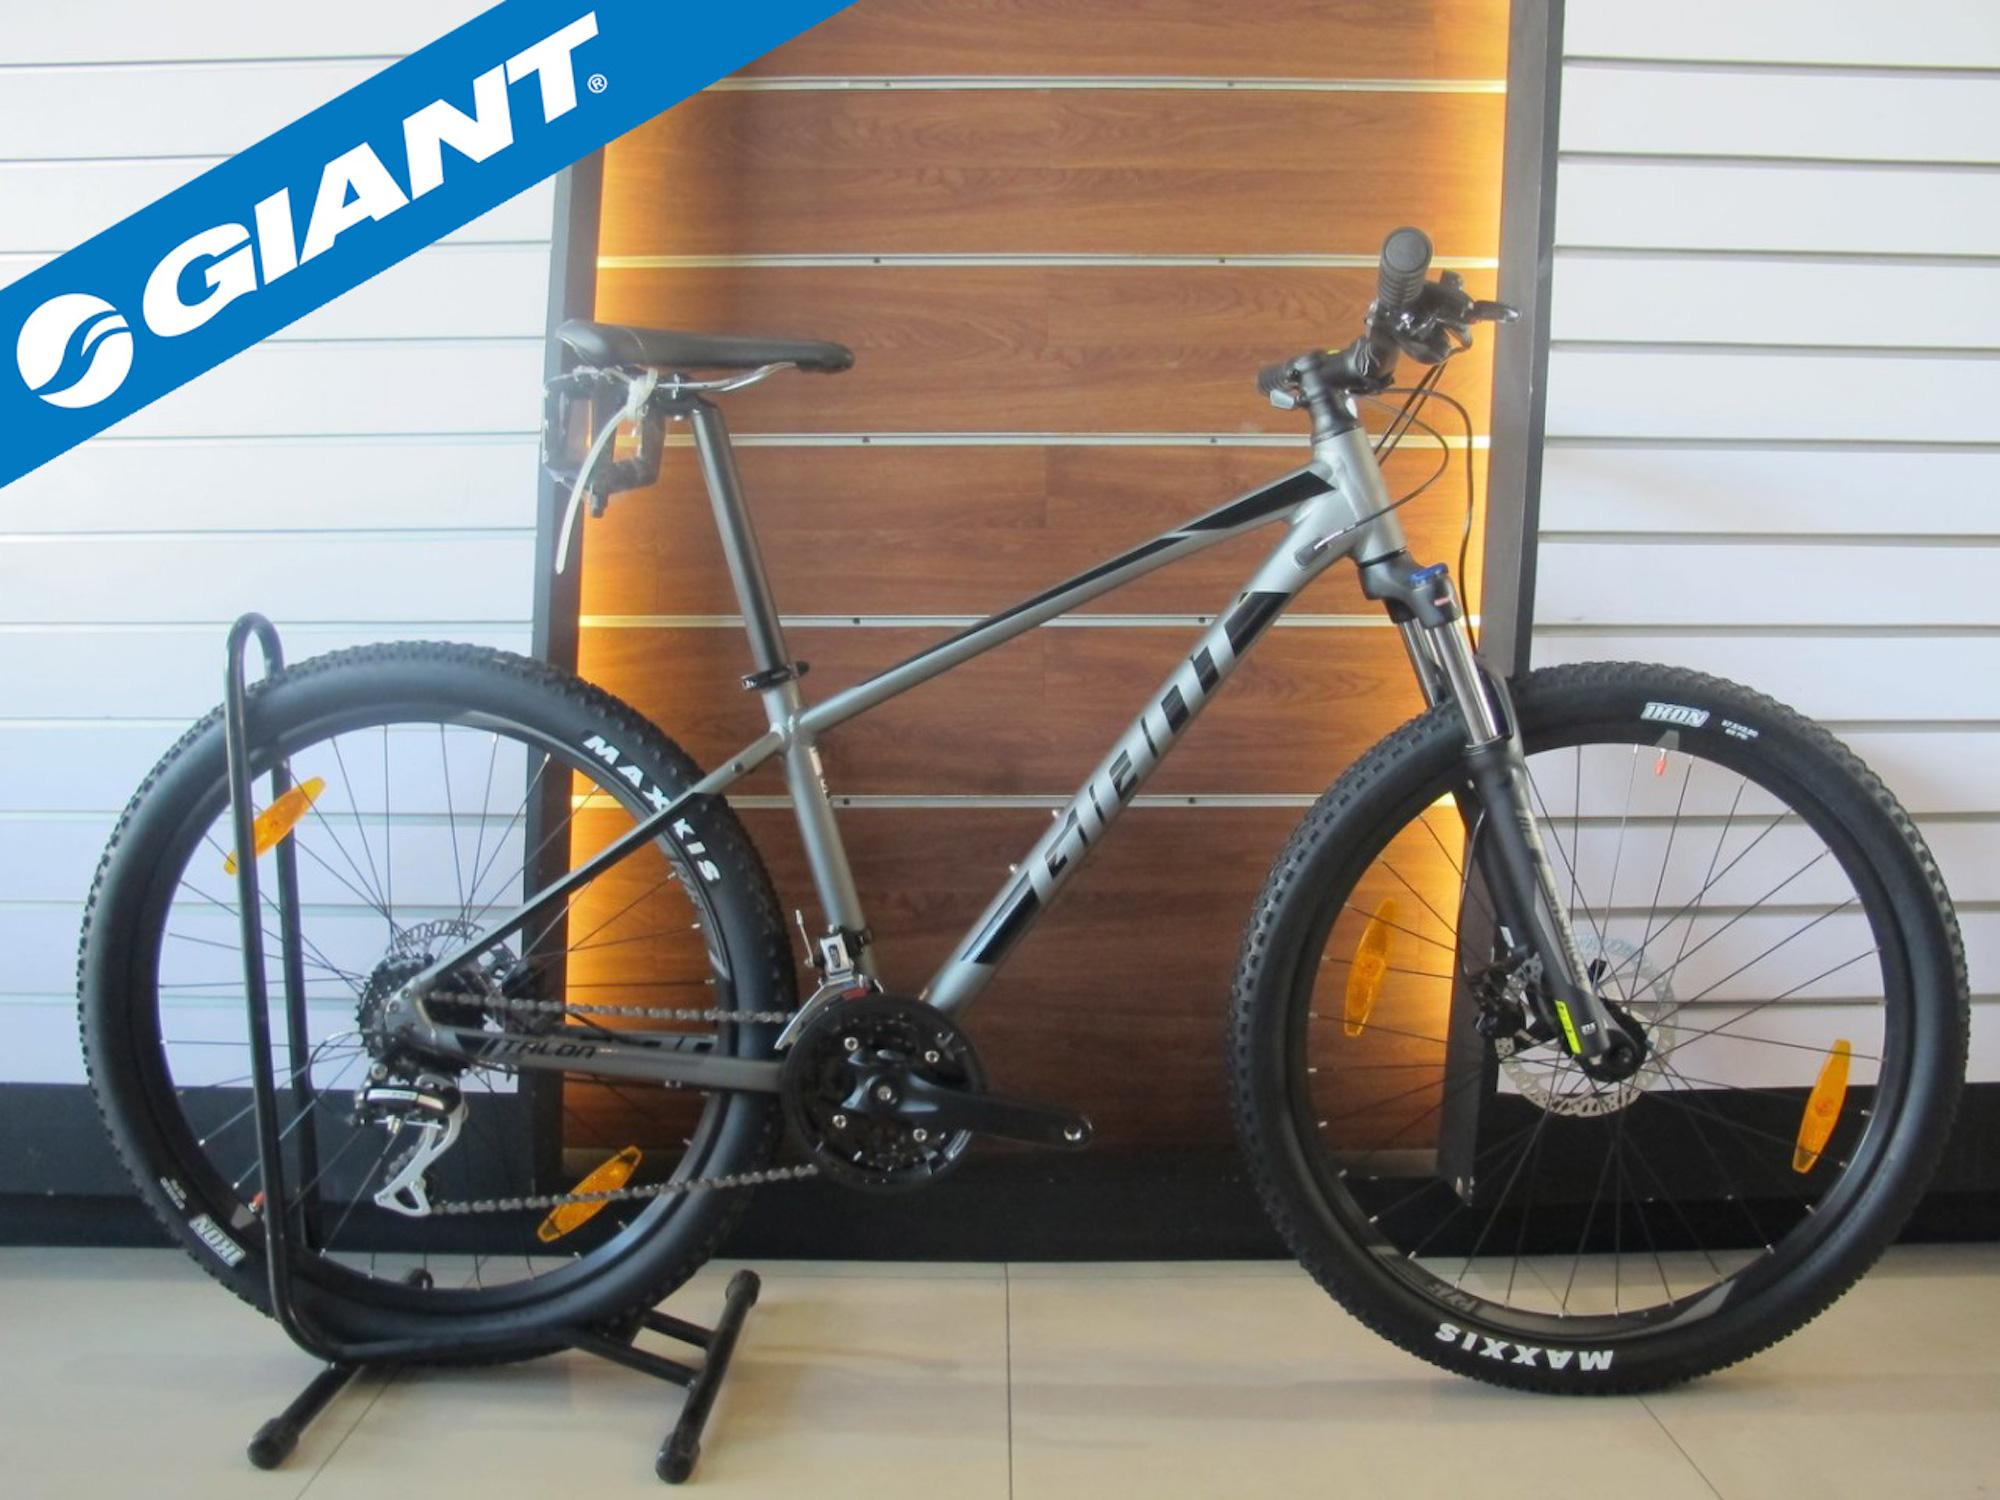 f6972cdfbf6 Giant Philippines - Giant Mountain Bike for sale - prices & reviews ...